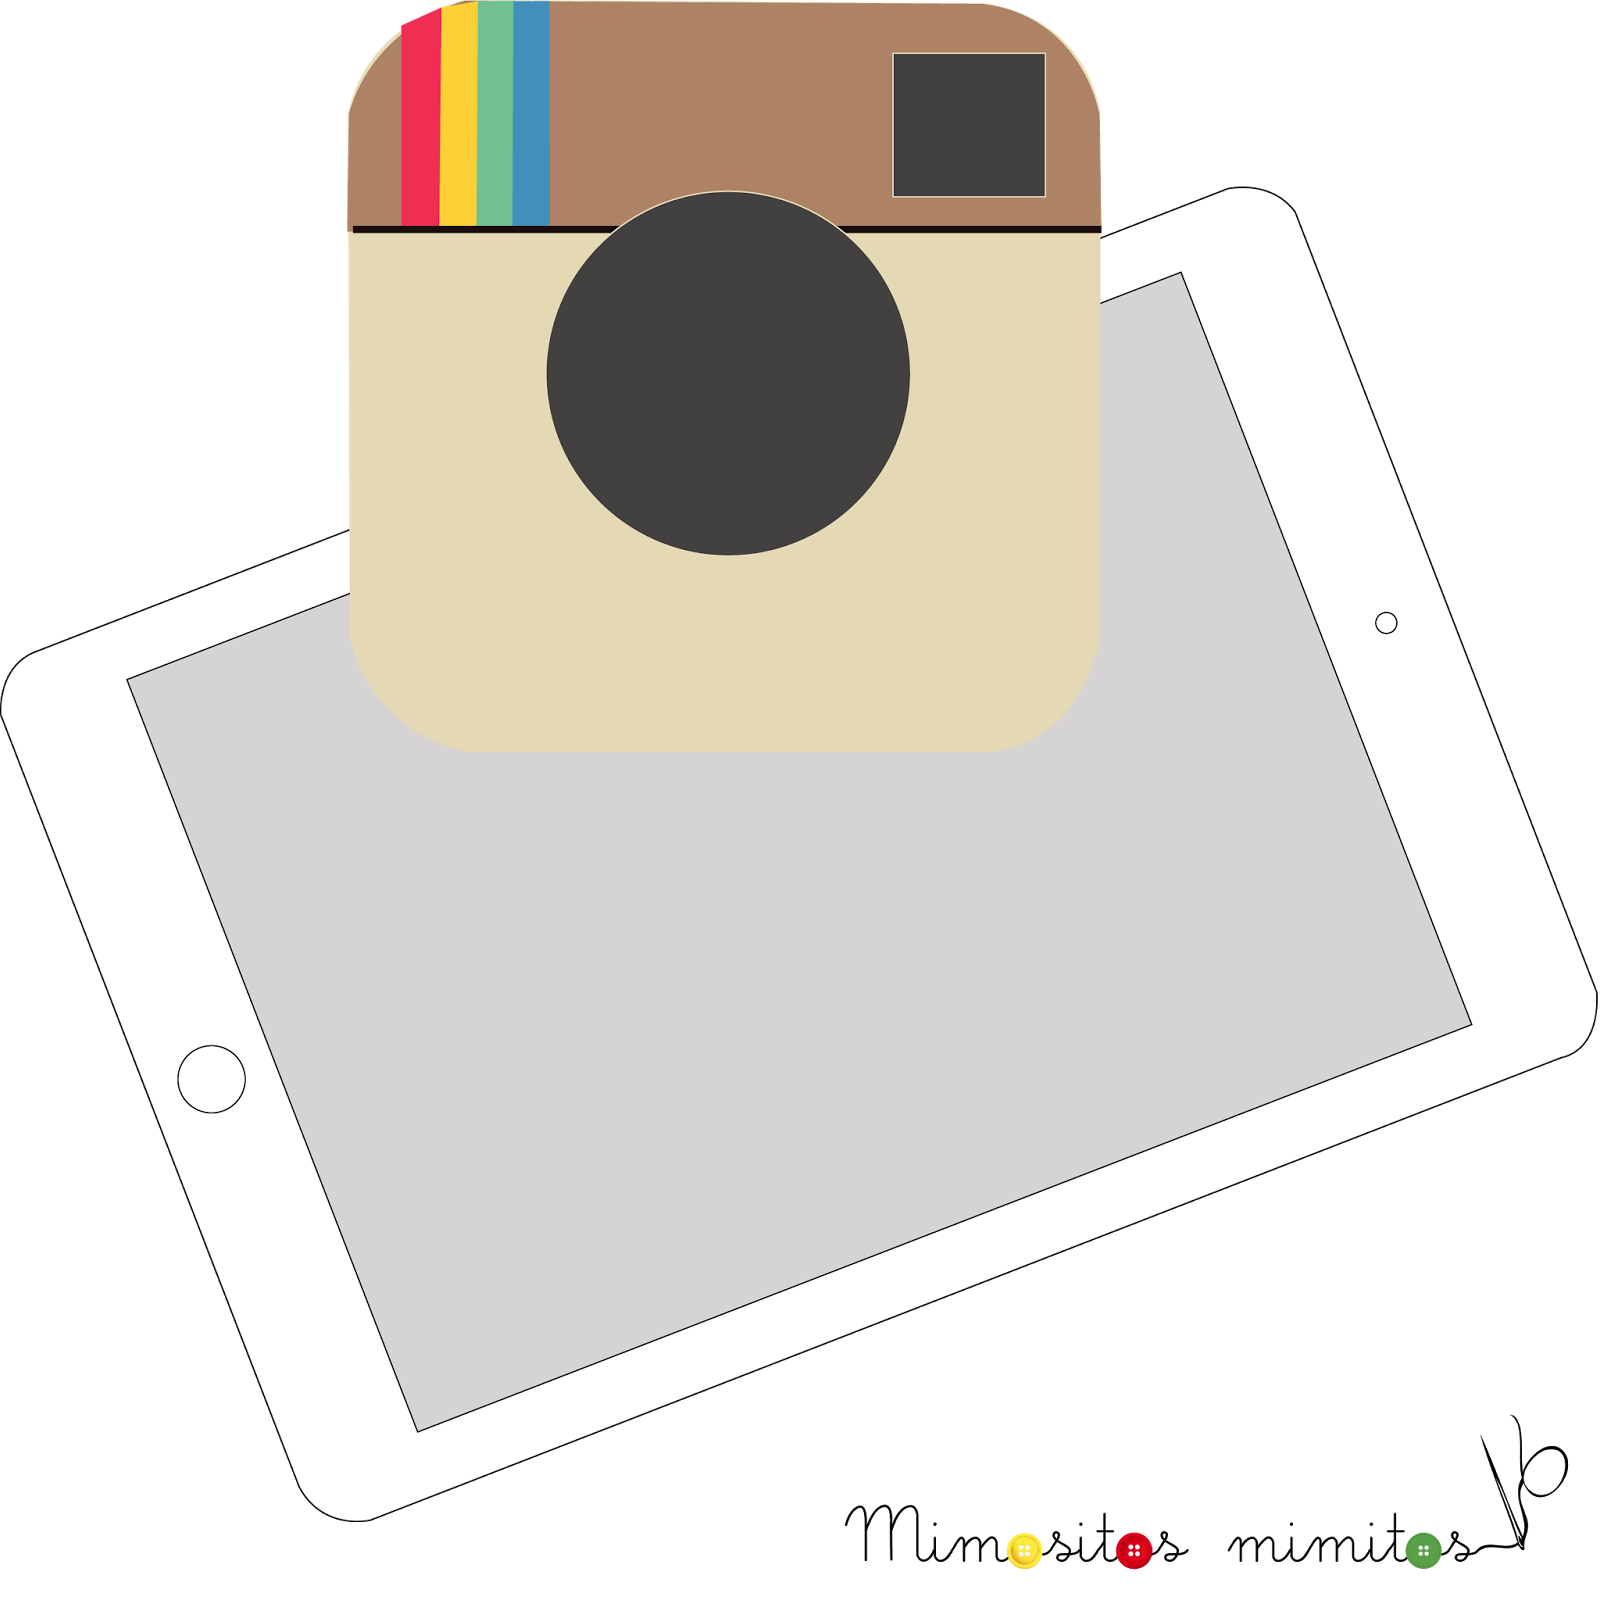 freebies hipster gratis infografia instagram ipad iphone postureo